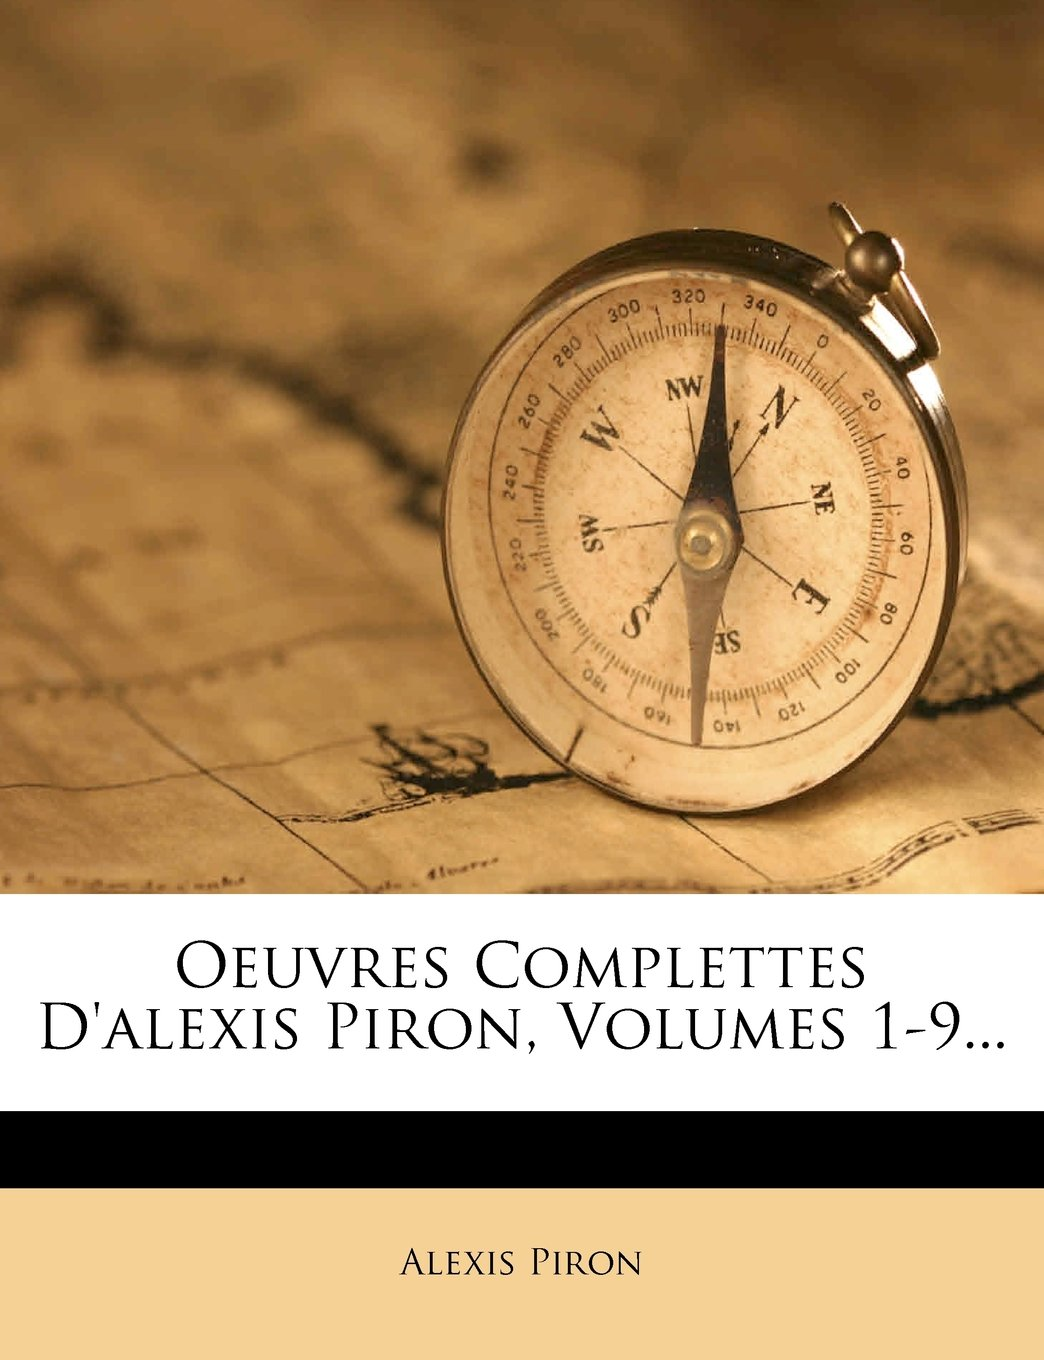 Oeuvres Complettes D'alexis Piron, Volumes 1-9... (French Edition) PDF